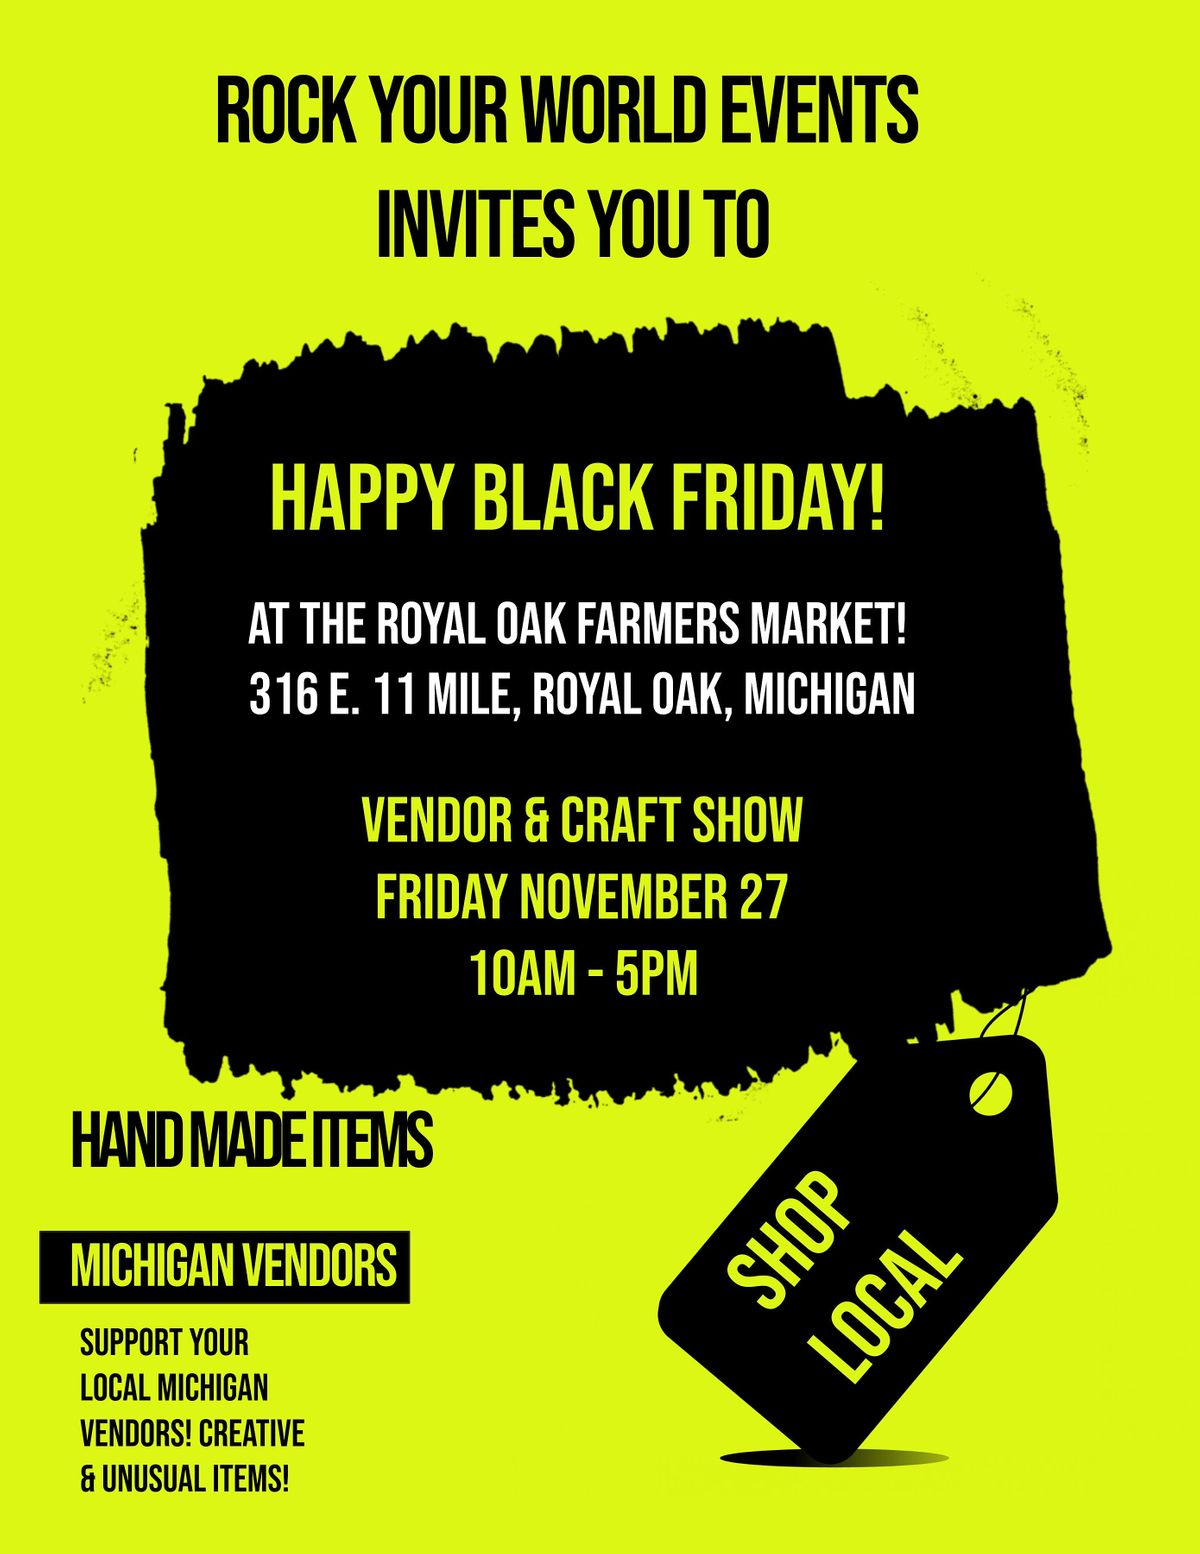 Happy Black Friday Vendor Craft Show At The Royal Oak Farmers Market Royal Oak Farmers Market 27 November 2020